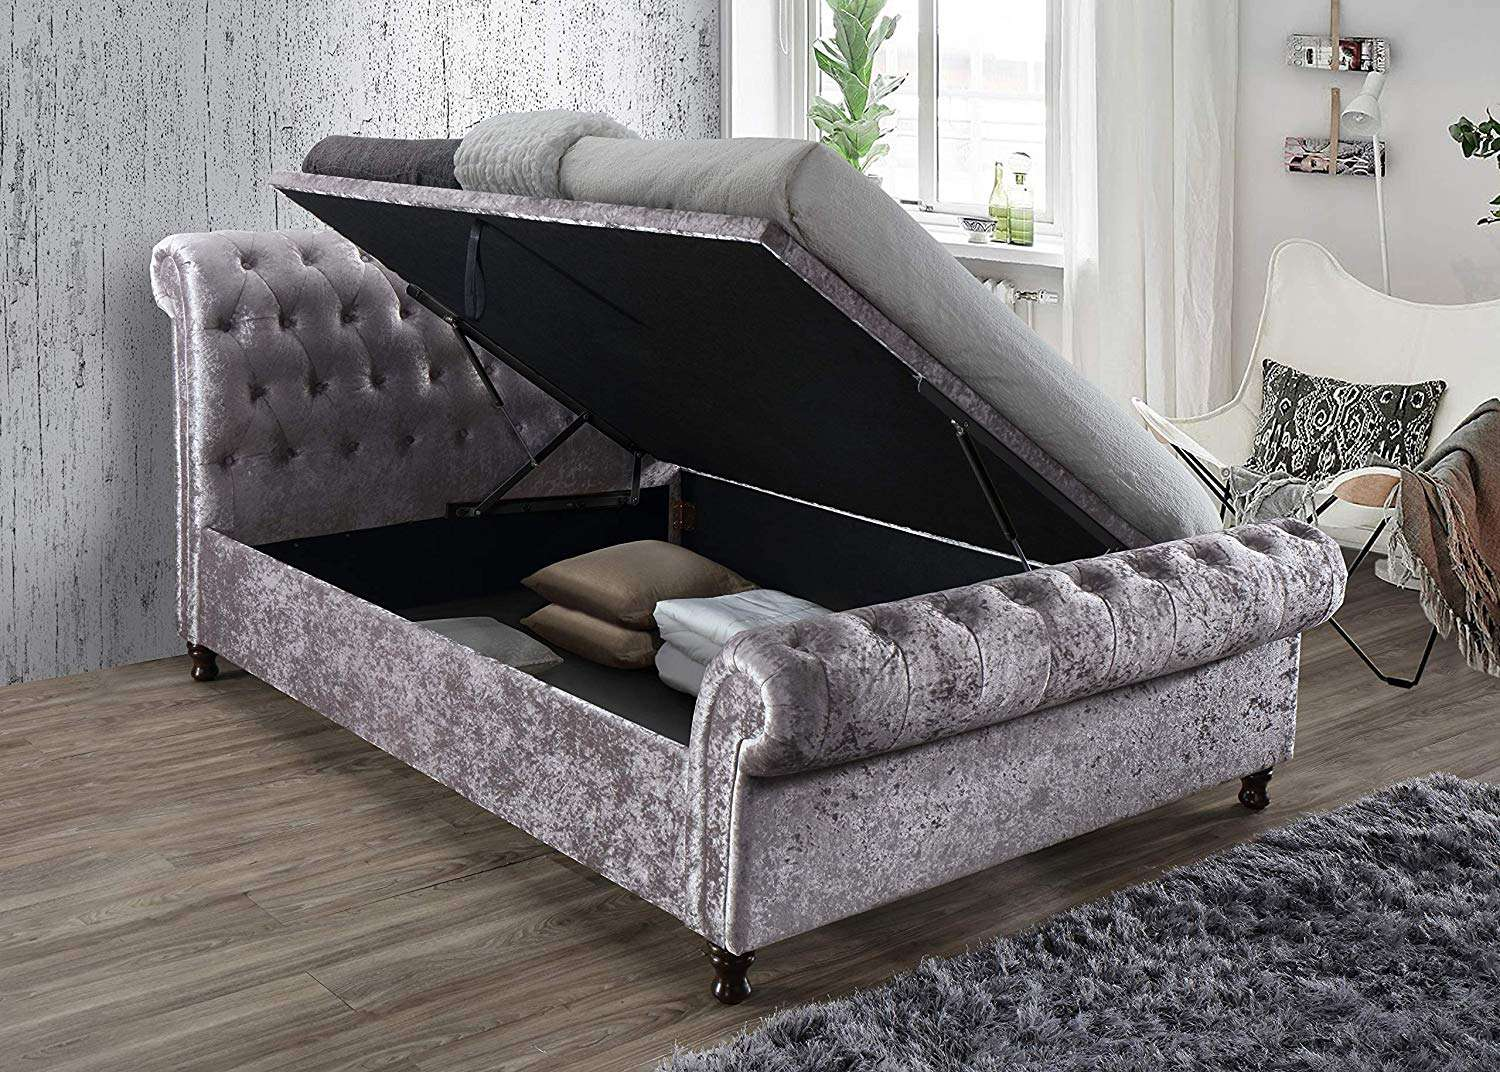 Groovy Sleigh Ottoman Bed Variety Of Colours And Sizes Vary From Double King And Super King Pdpeps Interior Chair Design Pdpepsorg